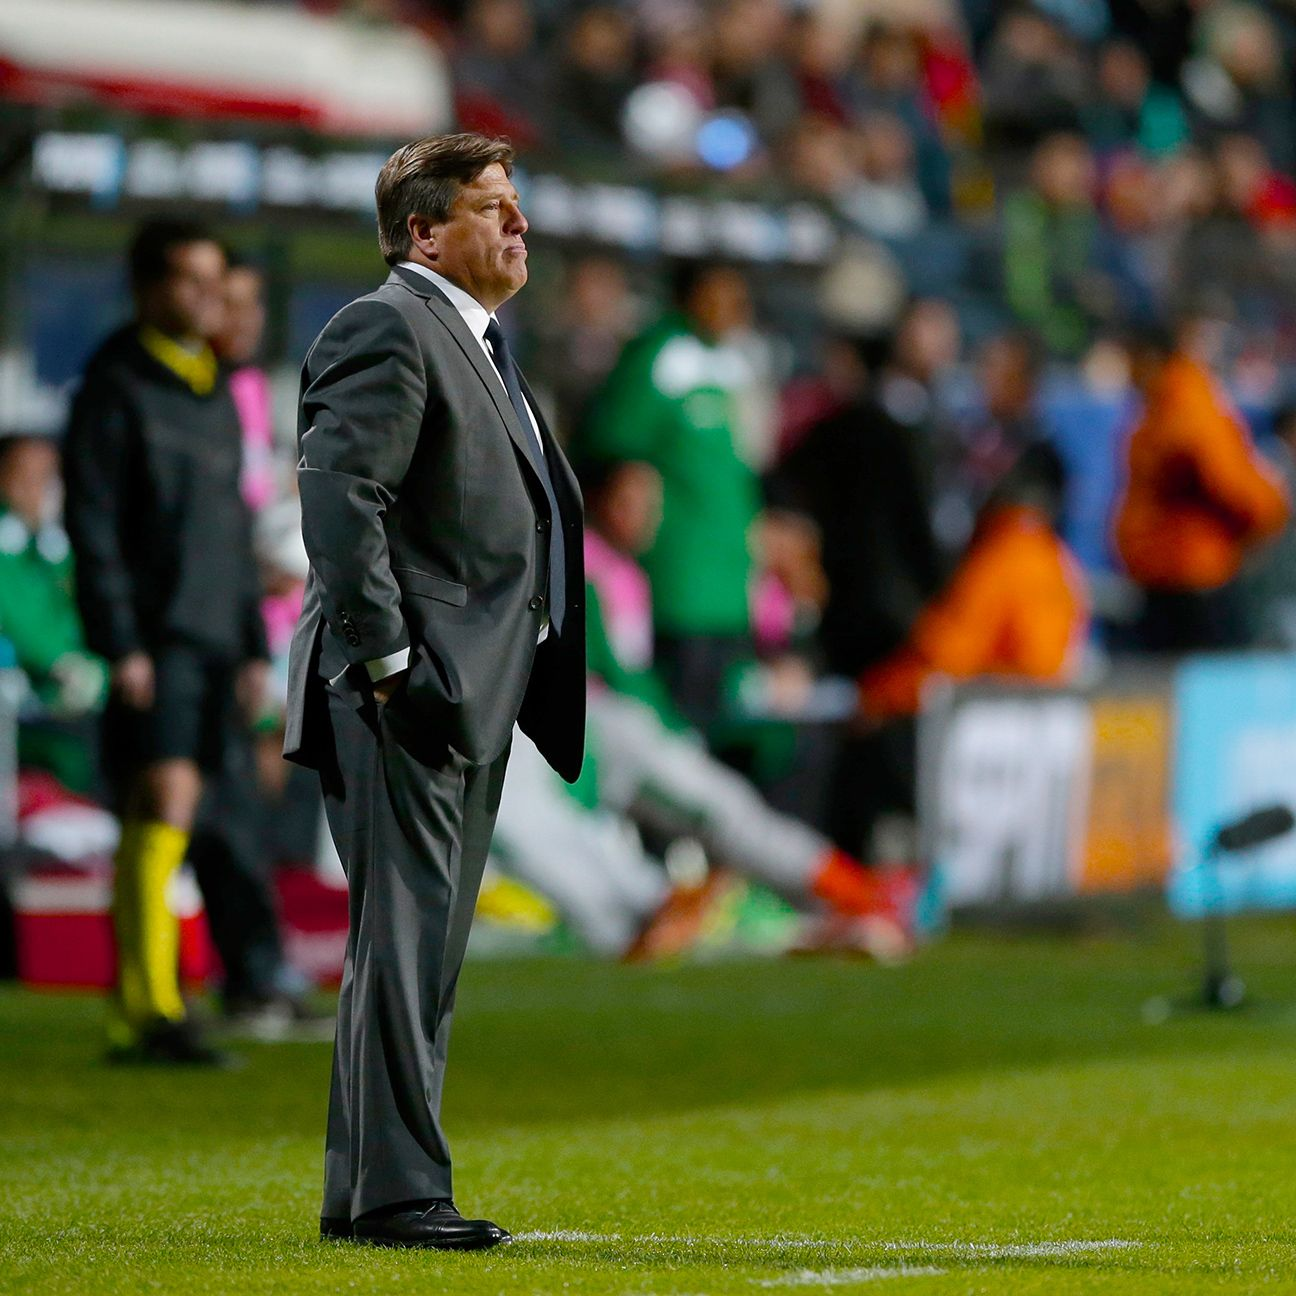 After 20 combustible months, Miguel Herrera's time as Mexico coach has reached its end.